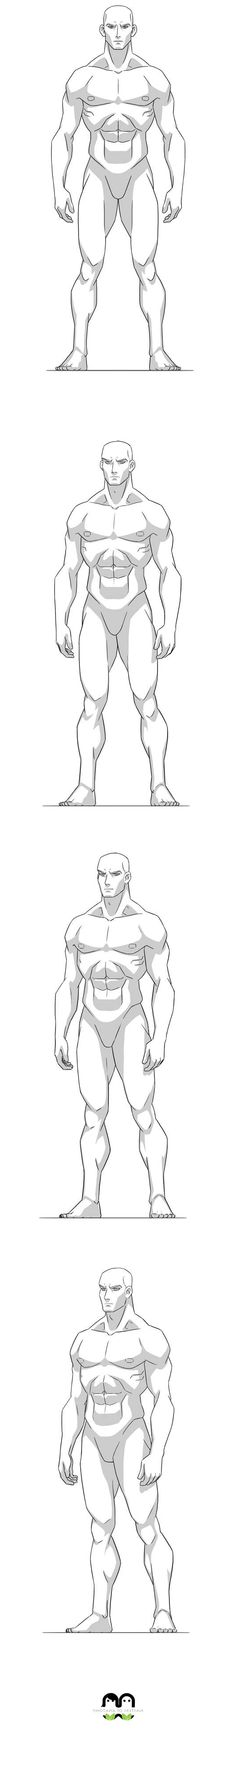 Art of Masters of Anatomy* Human Anatomy Drawing, Body Drawing, Anatomy Art, Character Design References, Character Art, Drawing Sketches, Art Drawings, Sketches Tutorial, Poses References